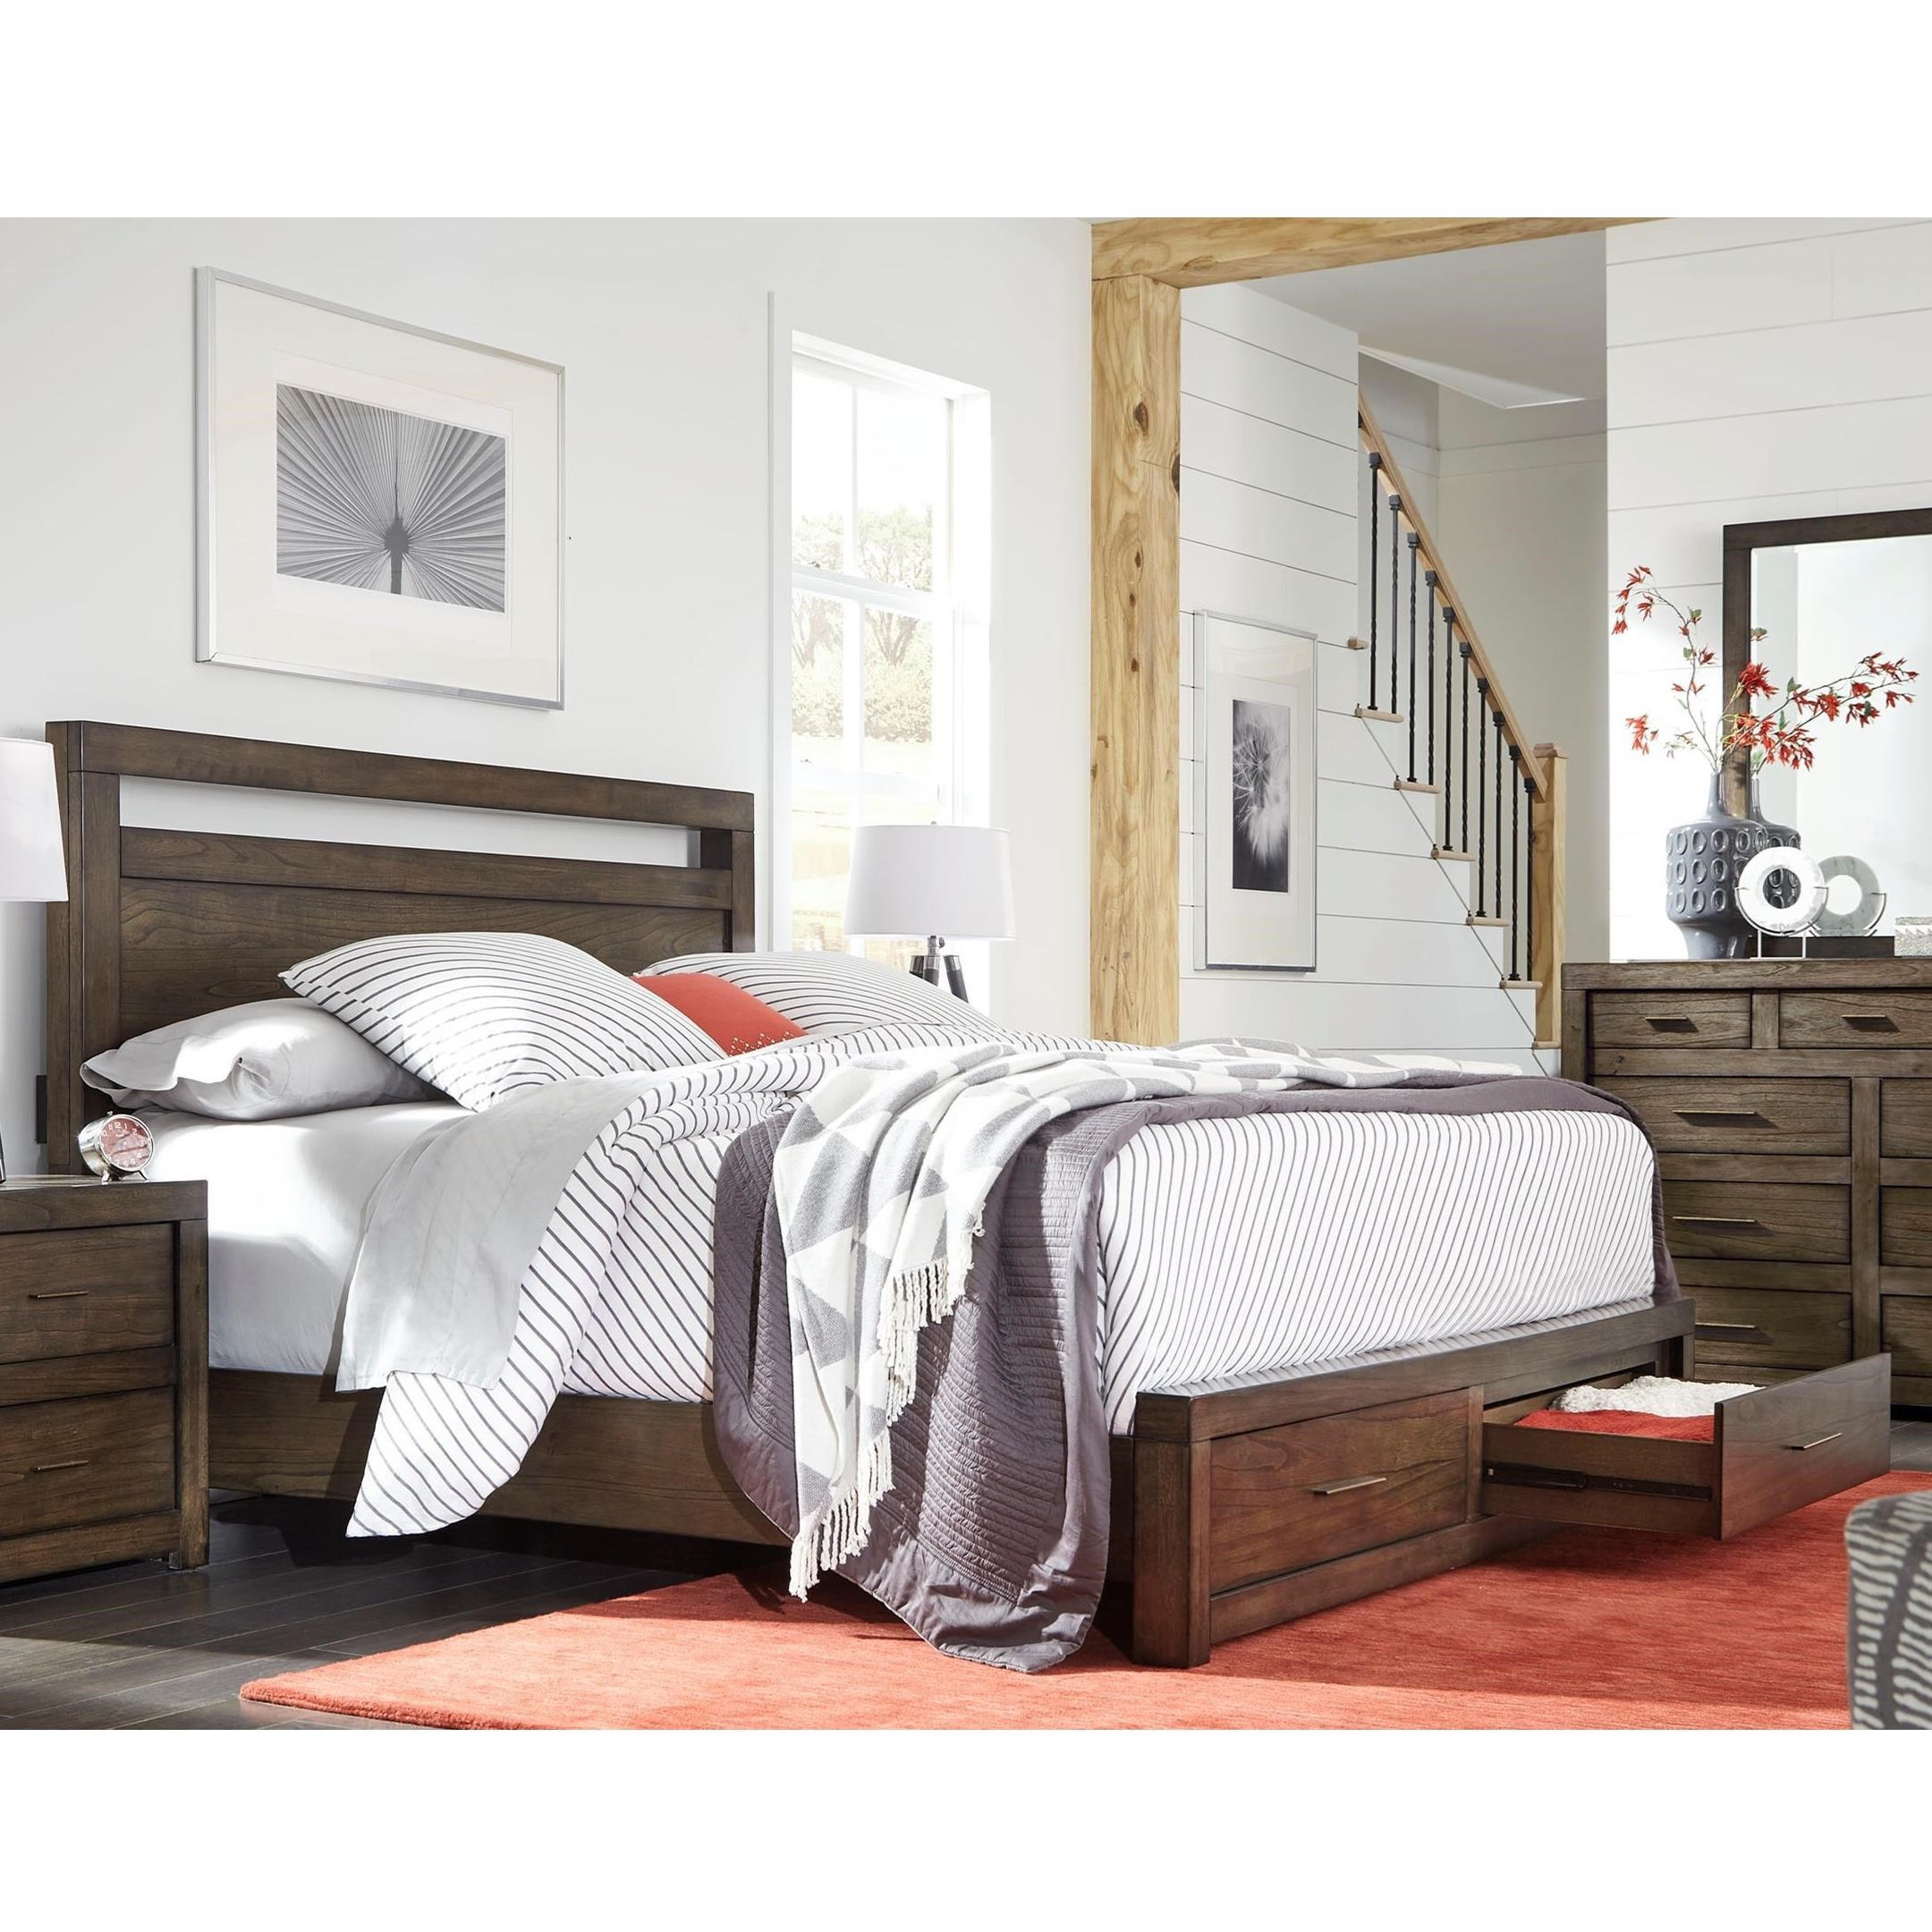 King Panel Storage Bed with USB Charging Outlets